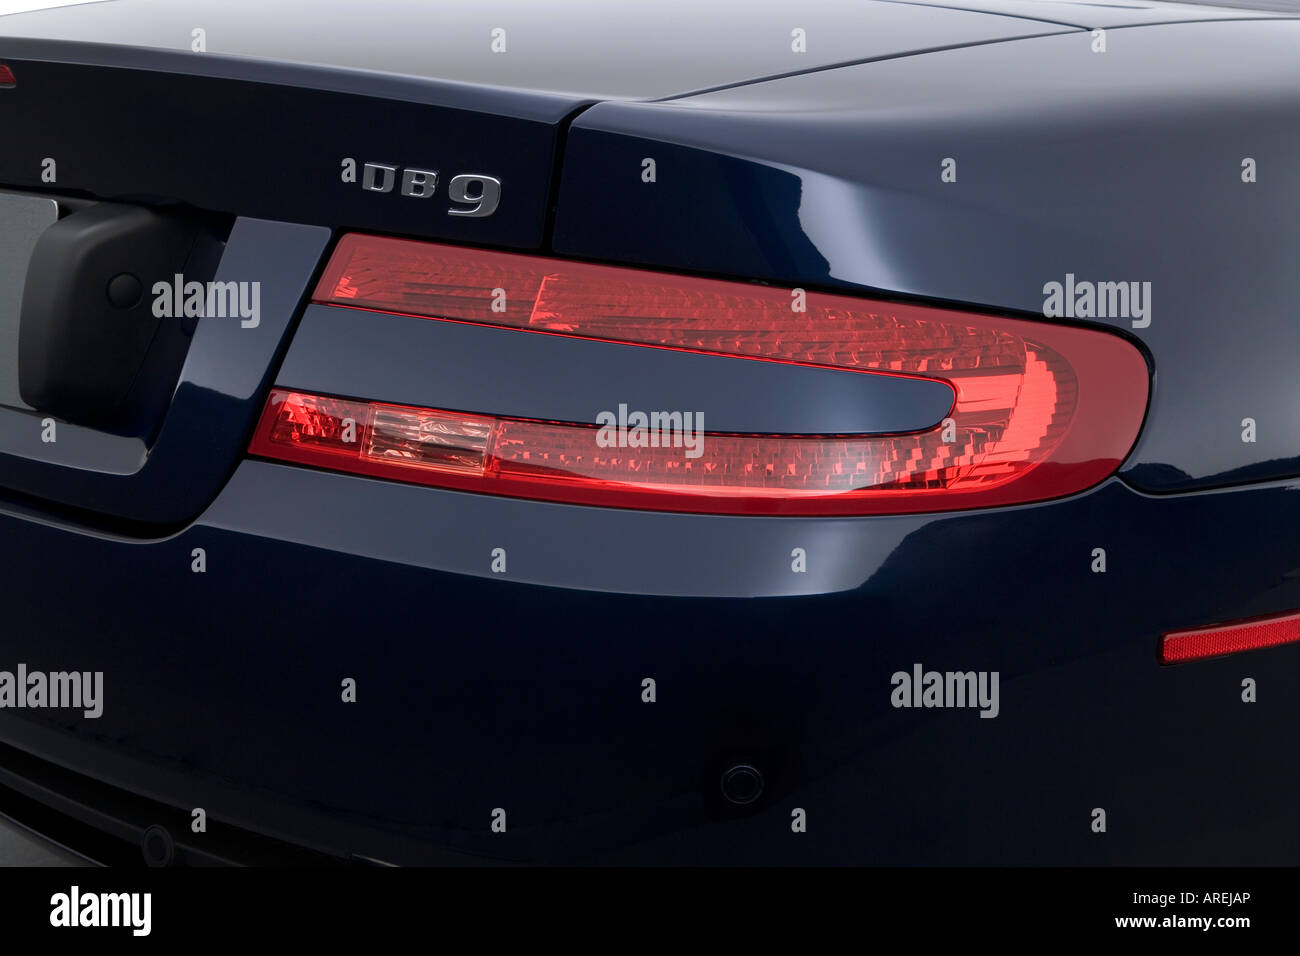 2006 Aston Martin Db9 Volante In Blue Tail Light Stock Photo